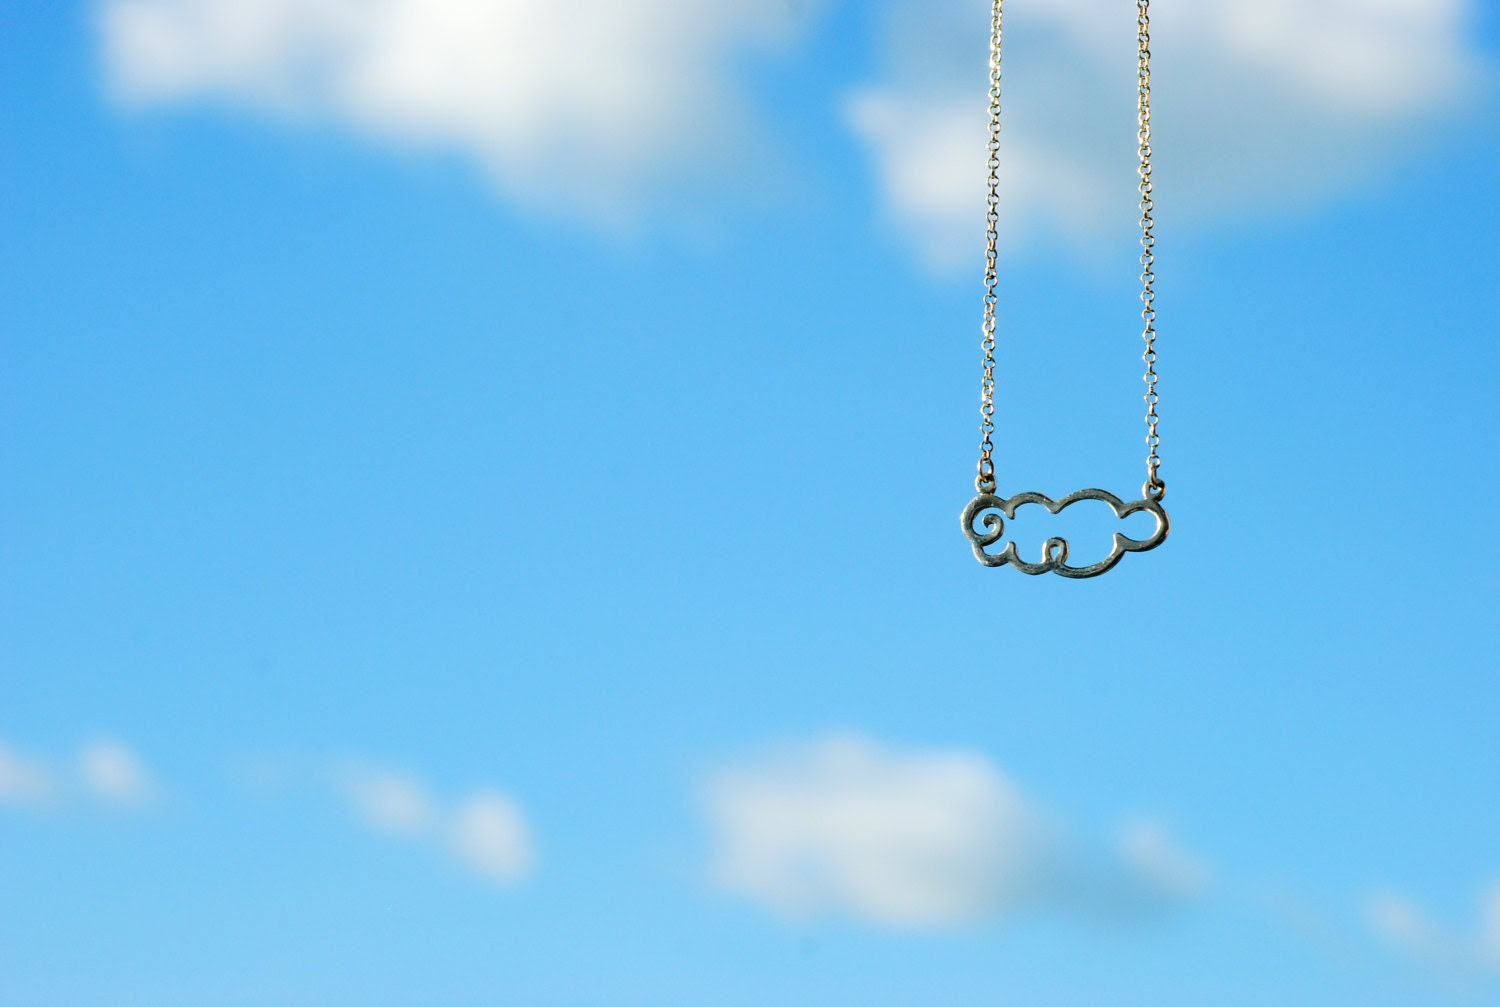 Fat cloud sterling silver necklace - arajera